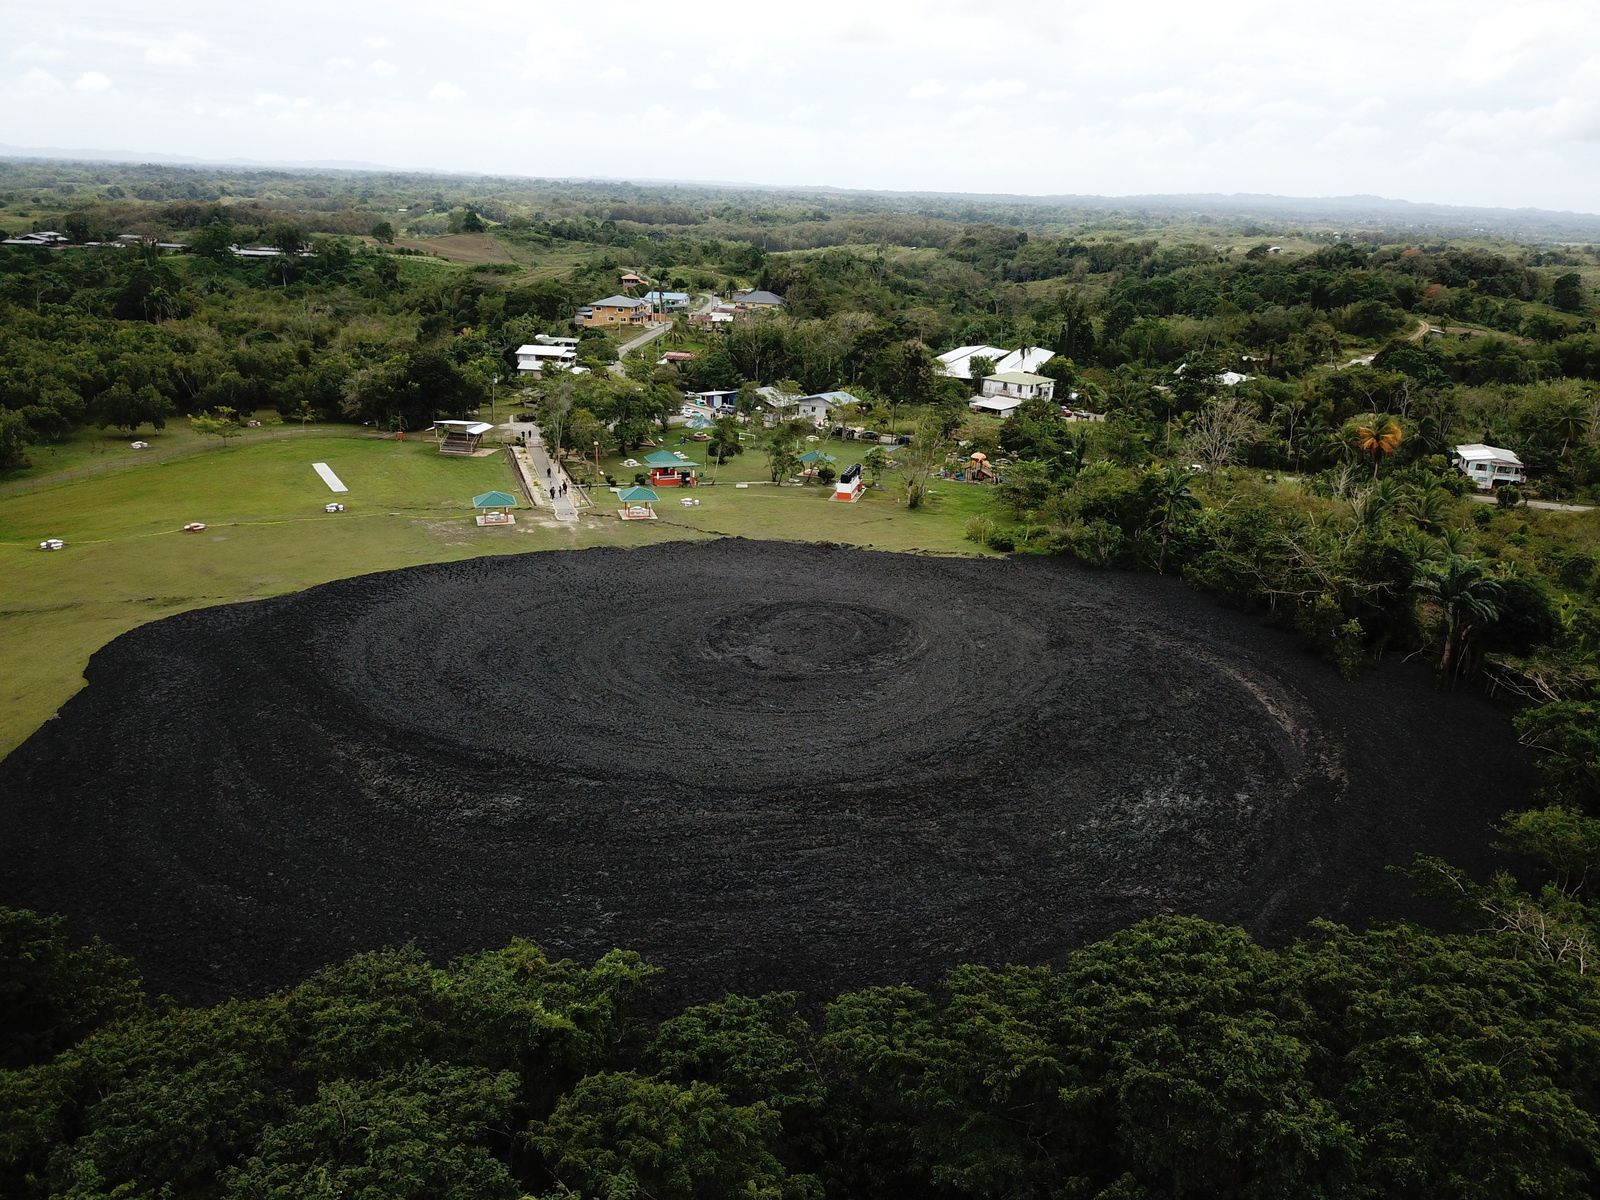 New Grant - Devil 's woodyard mud volcano 13.02.2018 - photo CNC3